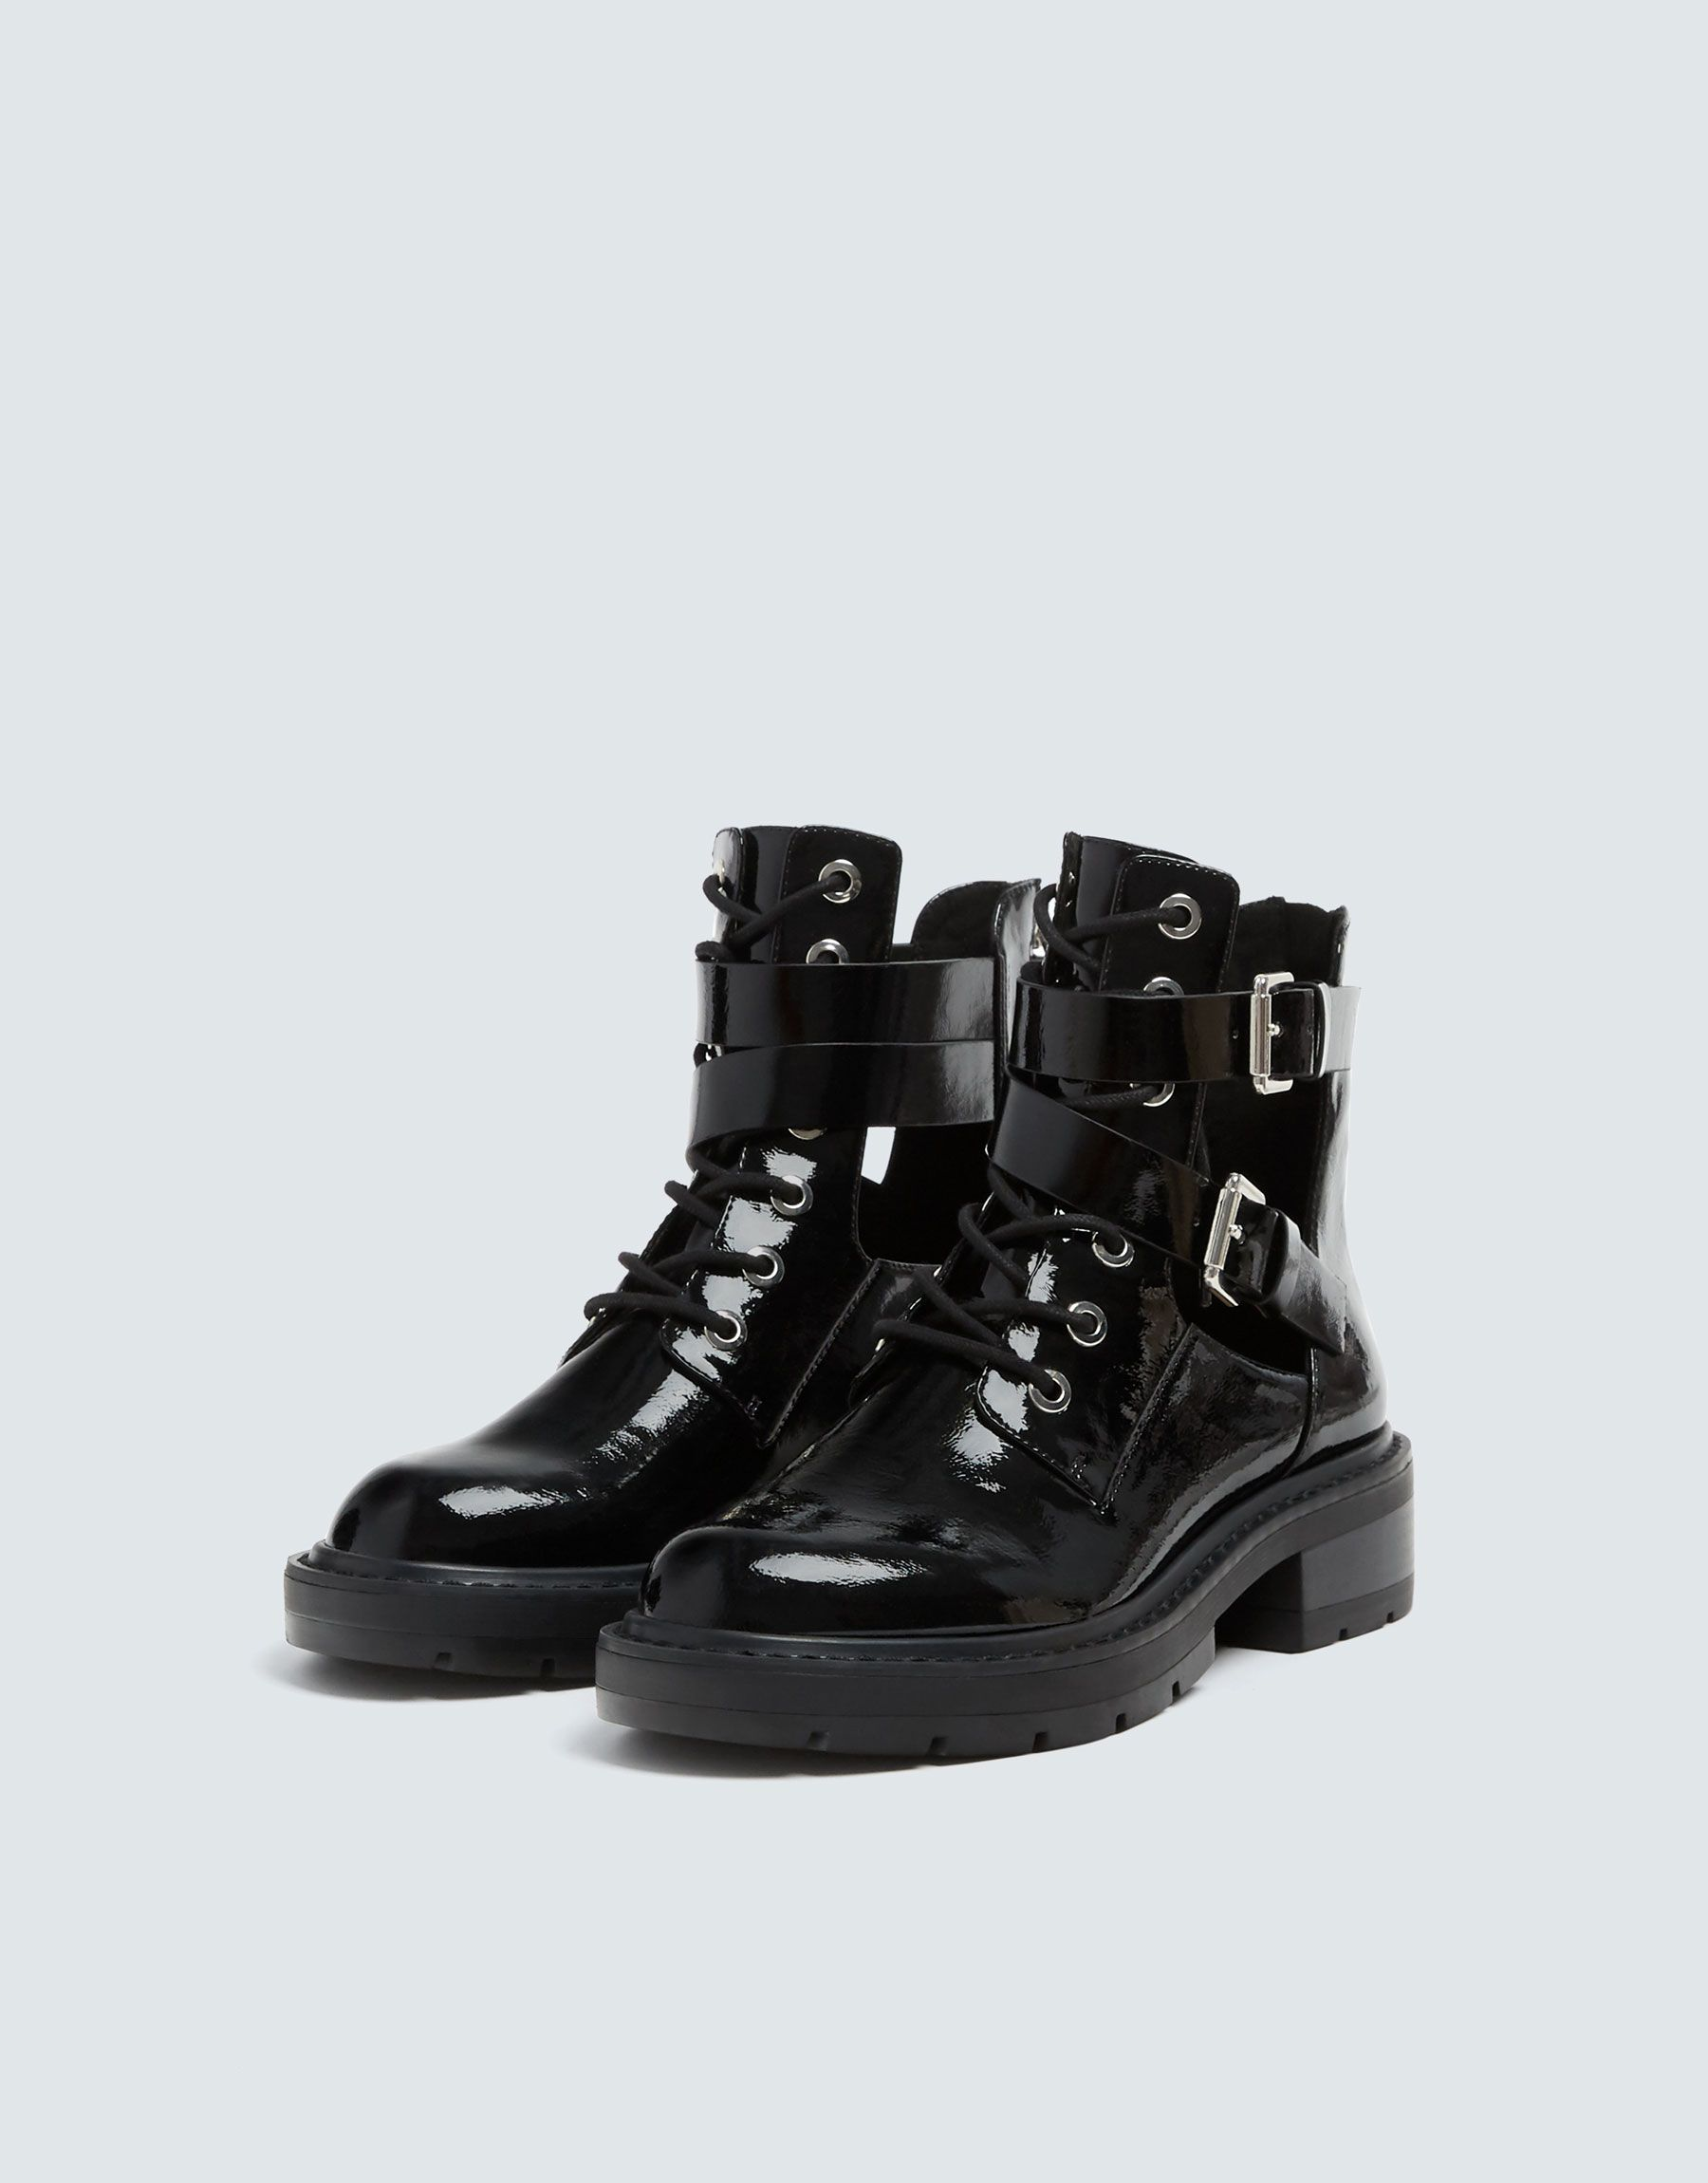 989599bcdb3 Black glossy finish lace-up biker ankle boots with die-cut details, zip on  the inside, buckles on the side and track soles. Heel height: 4 cm.